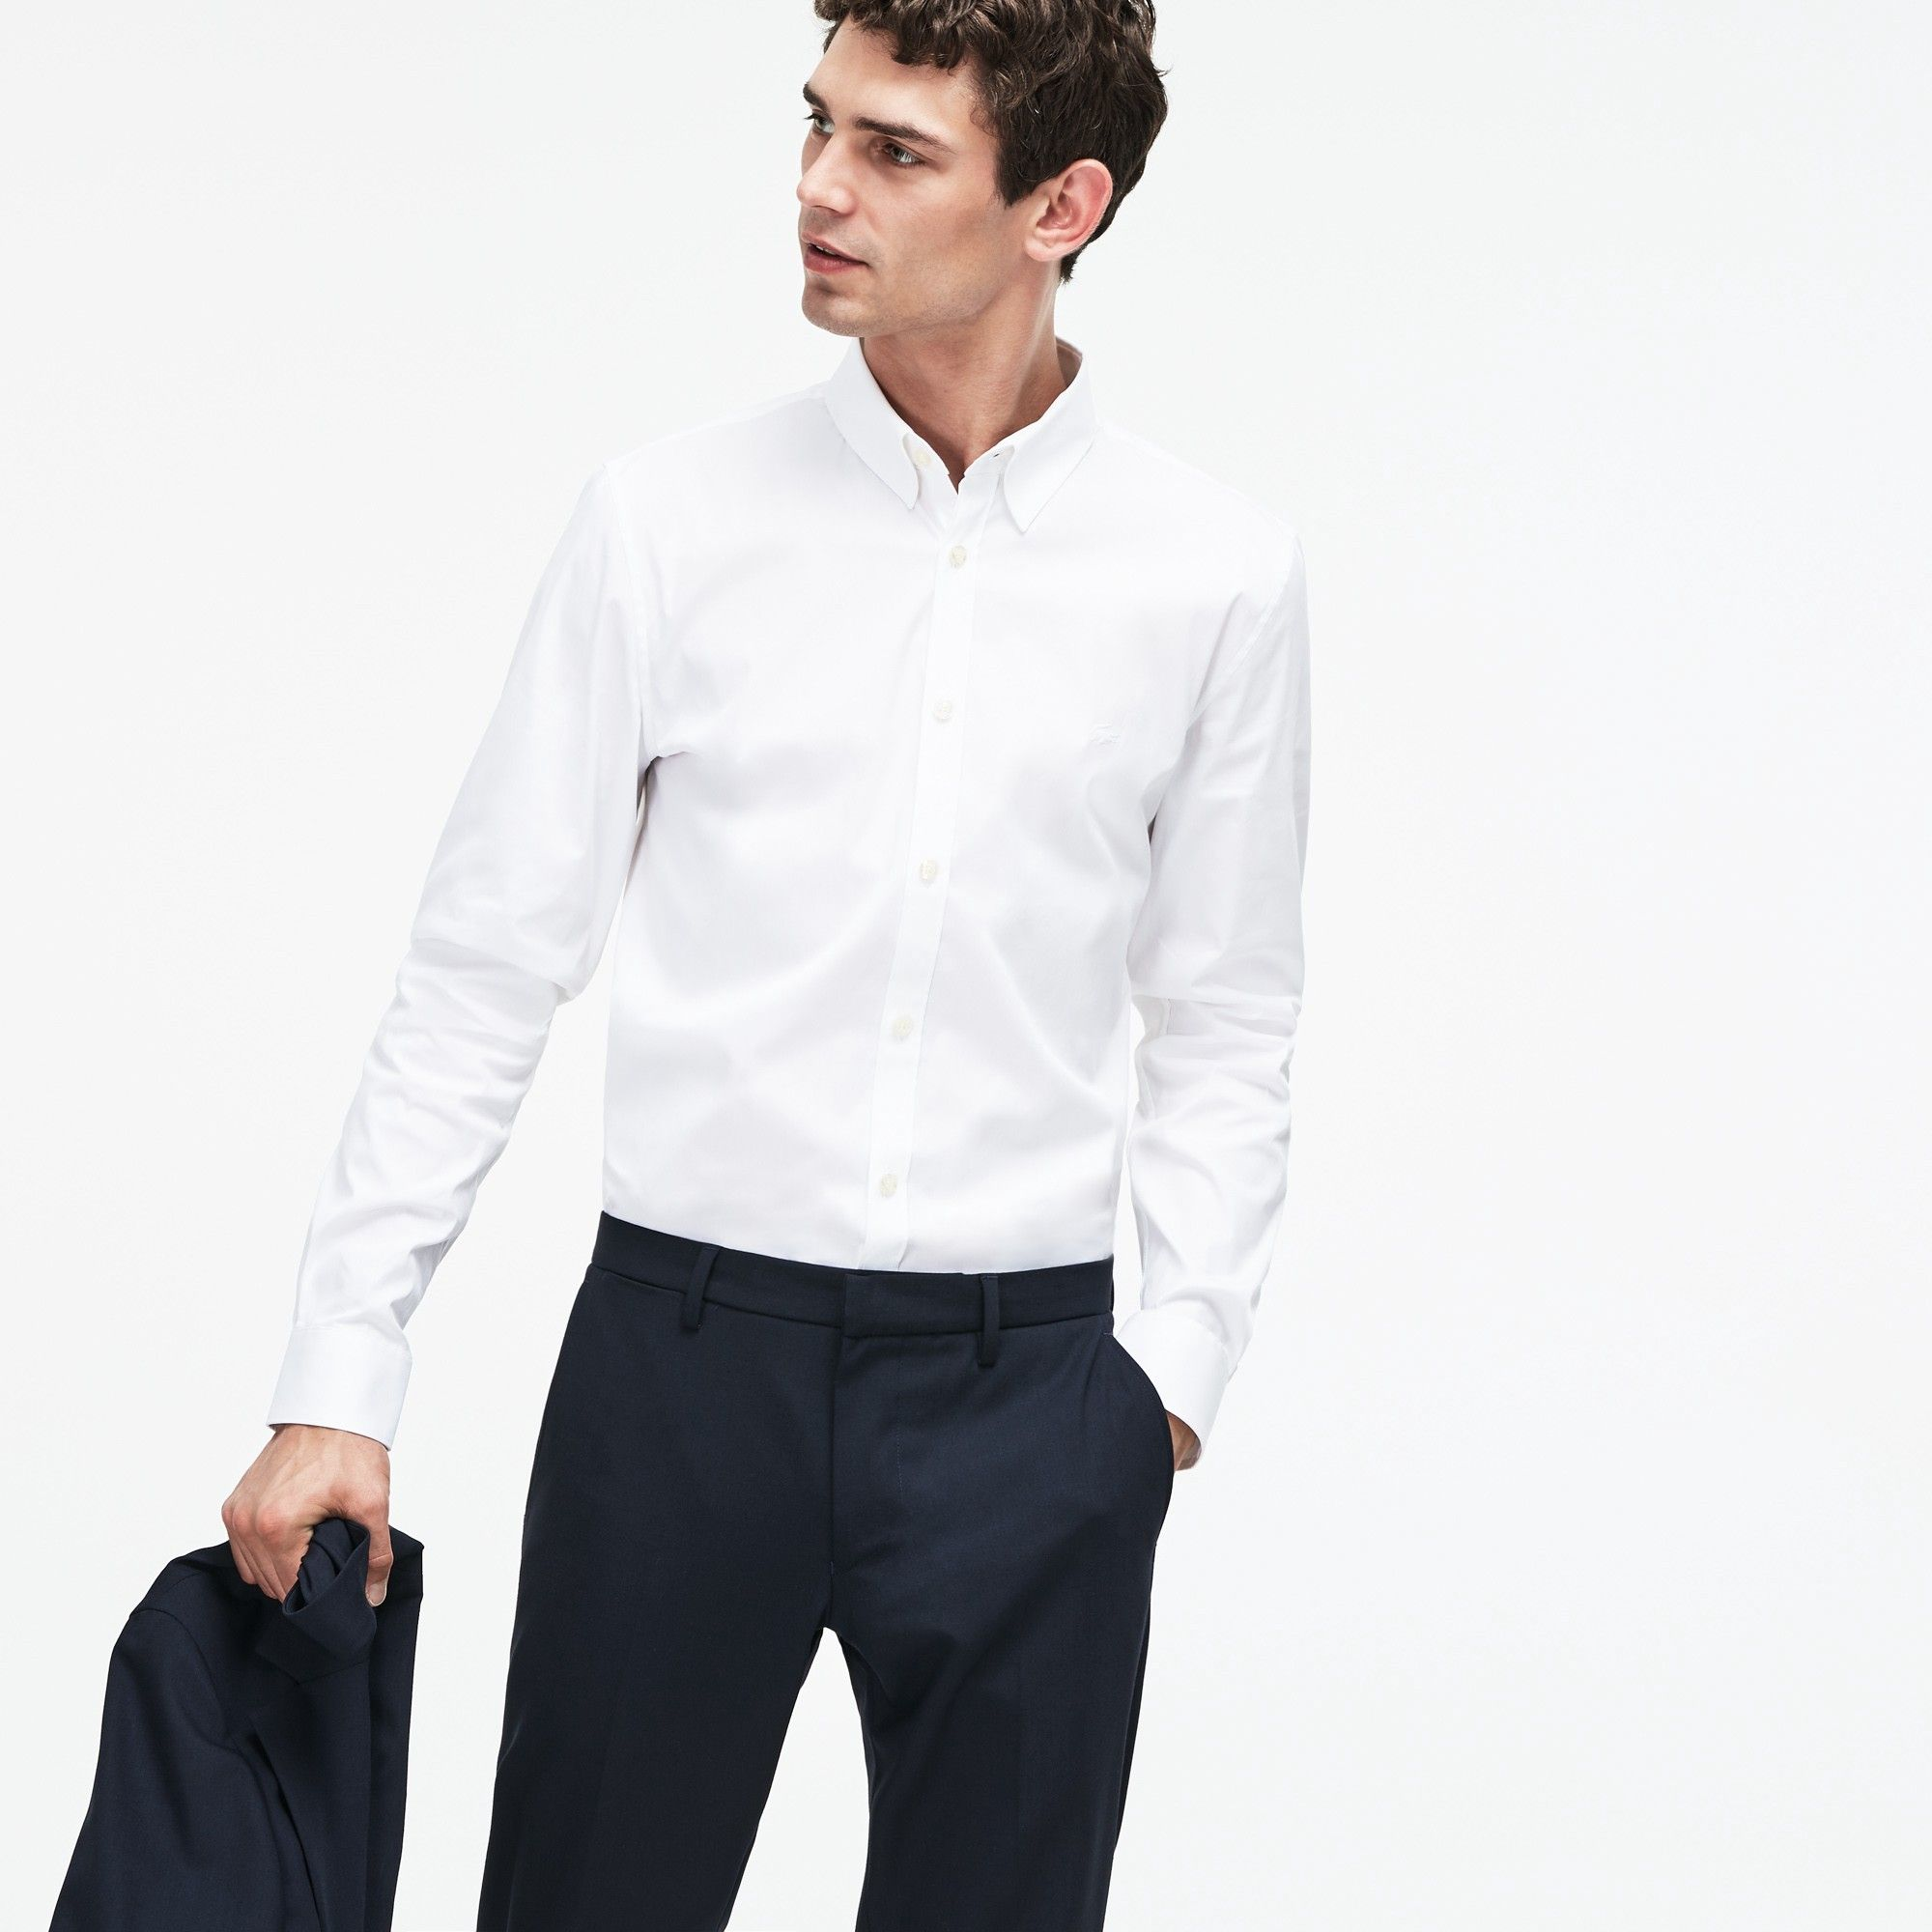 7b8a695efe Lacoste Men's Slim Fit Stretch Cotton Poplin Shirt - White 15 38 ...